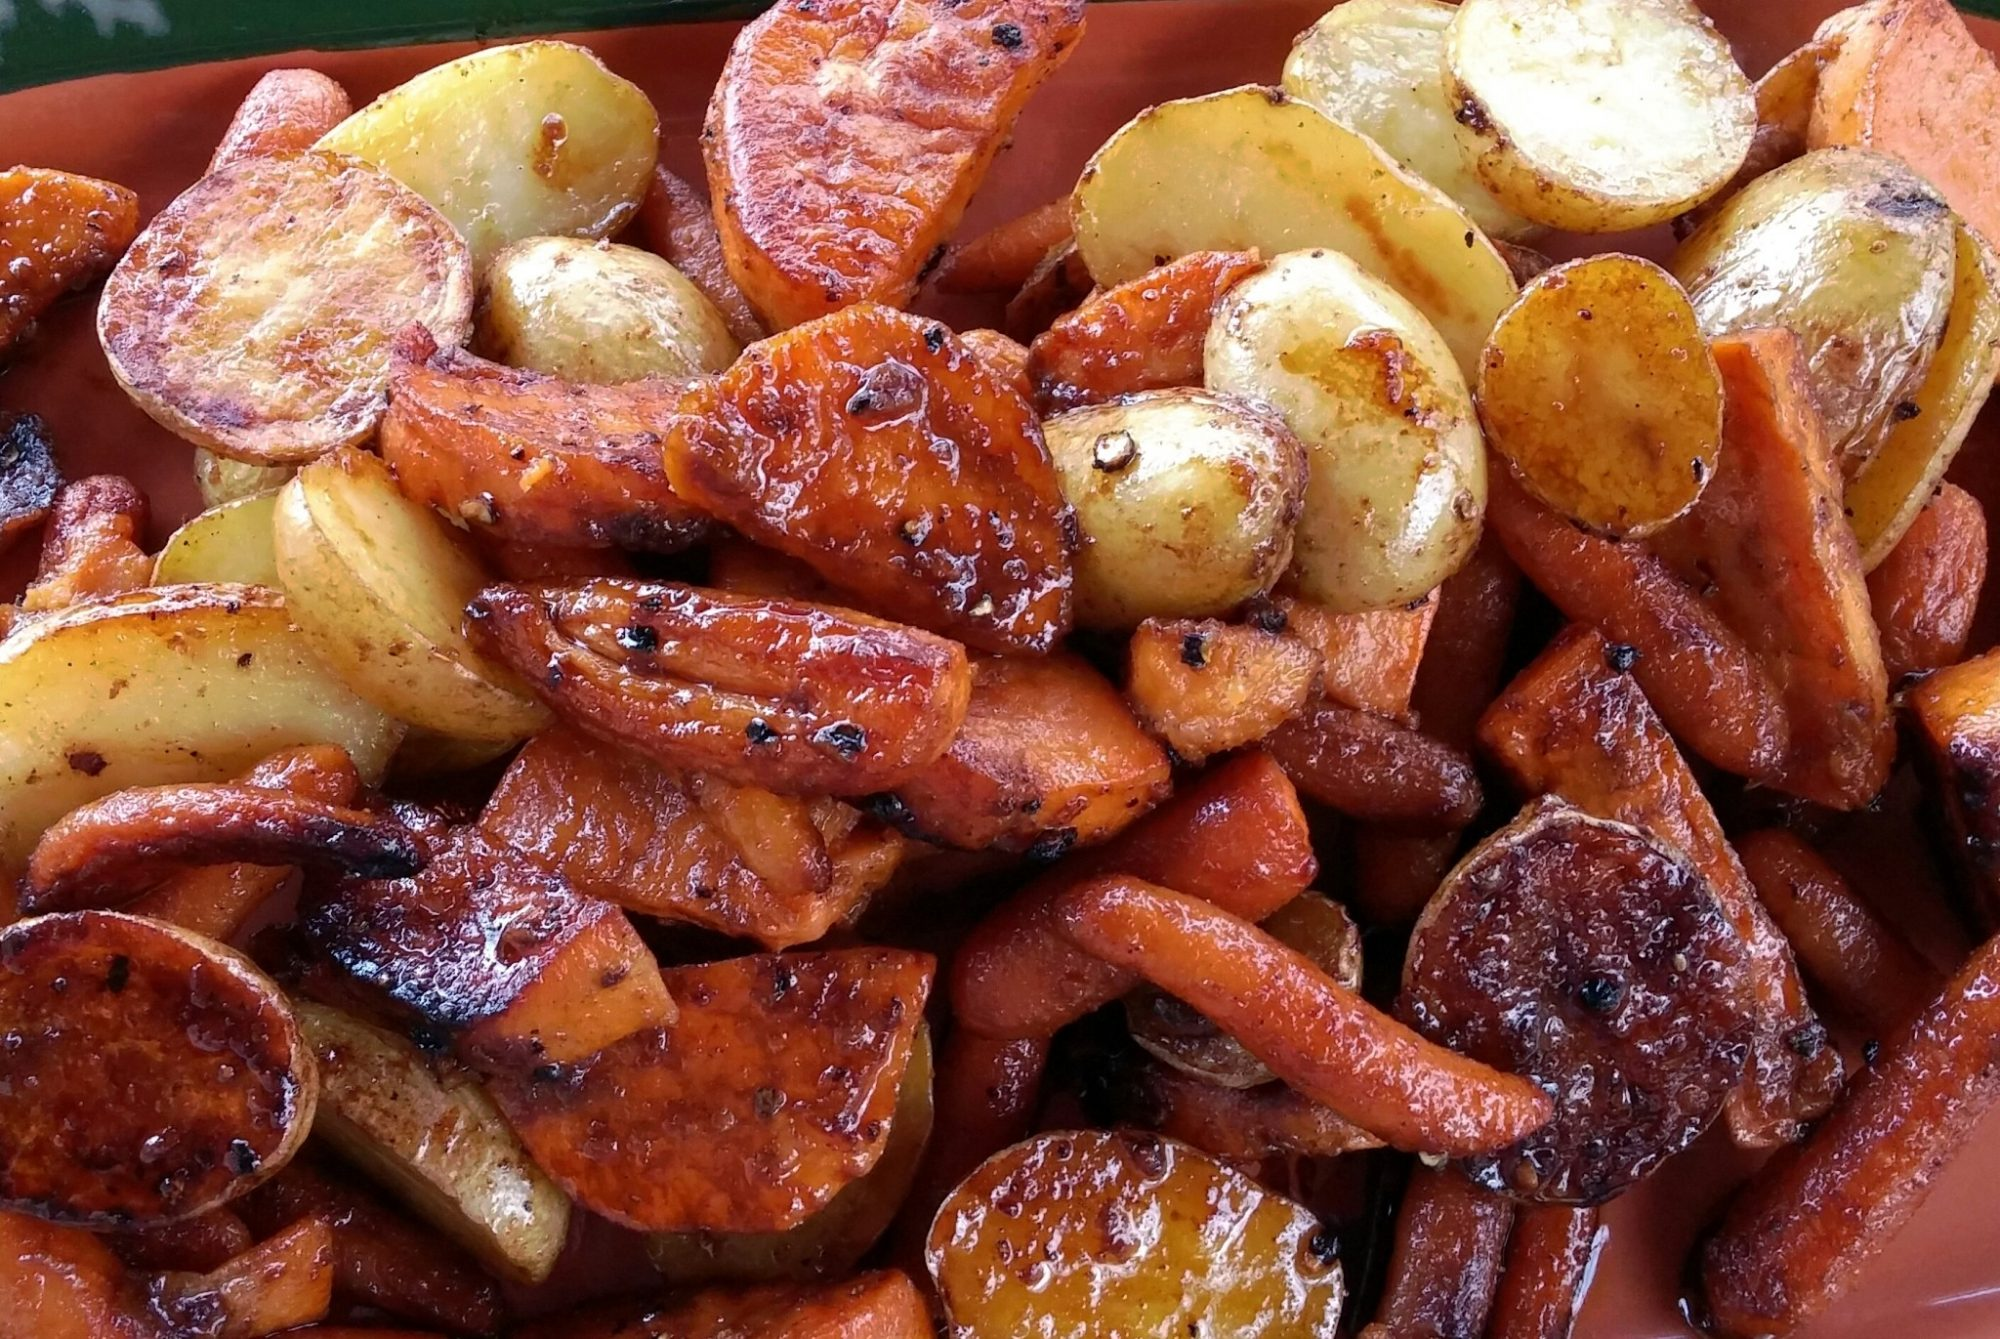 Balsamic Glazed Smoked Potatoes and Carrots